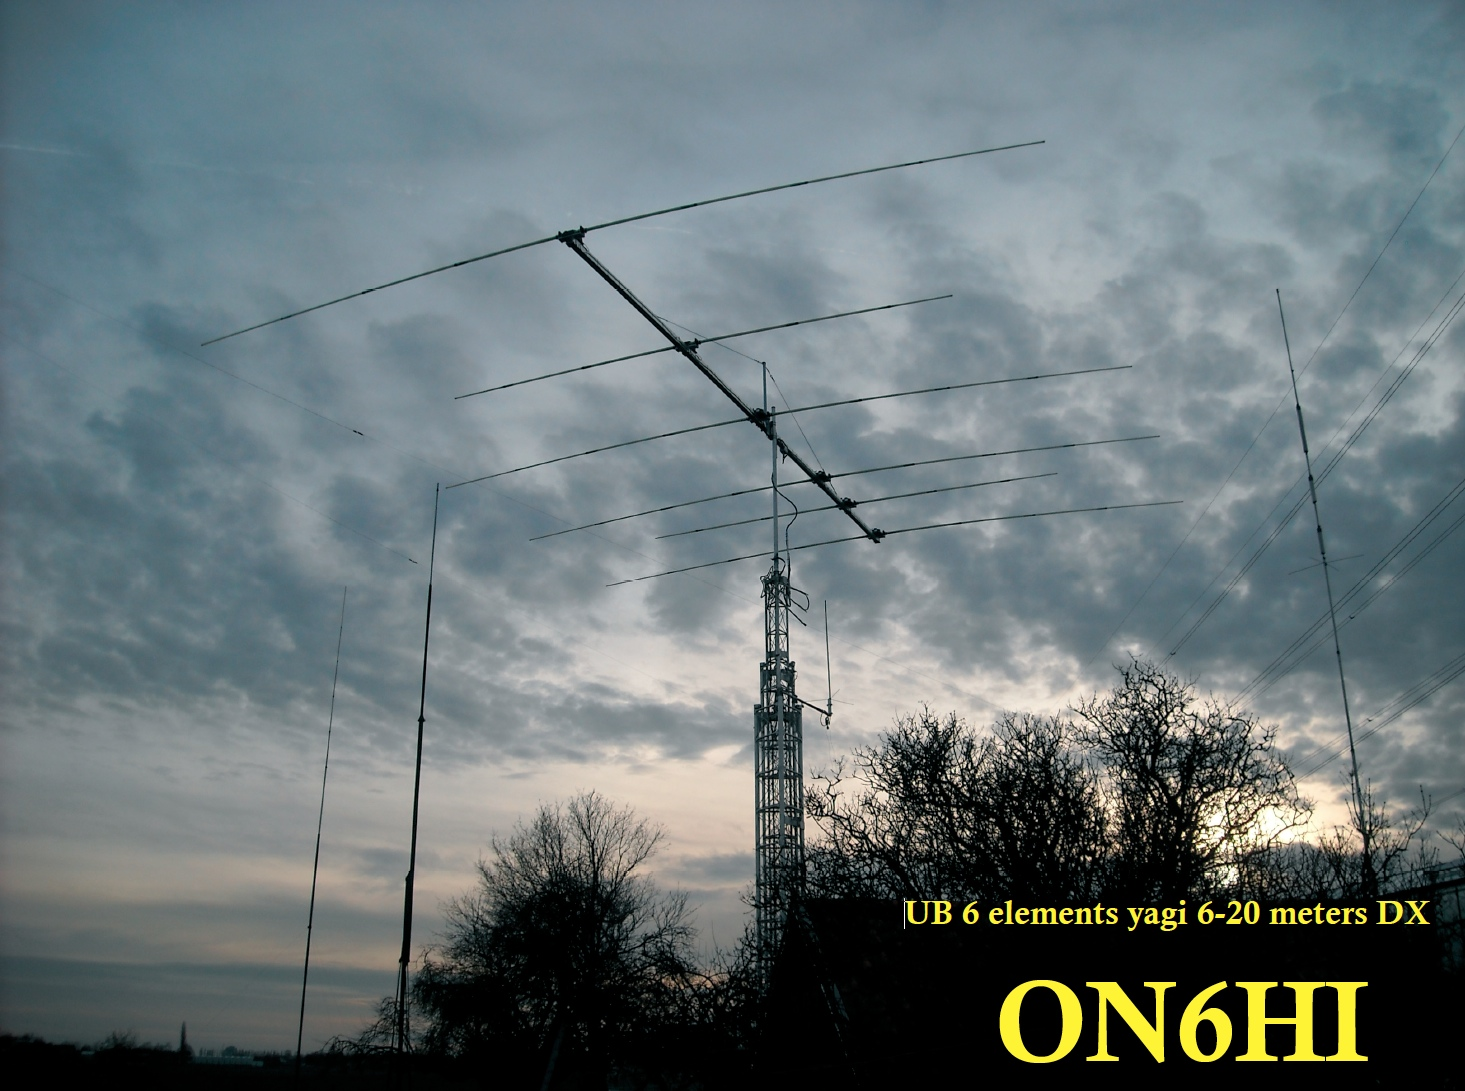 Ultrabeam 6 elements yagi 6-20m DX